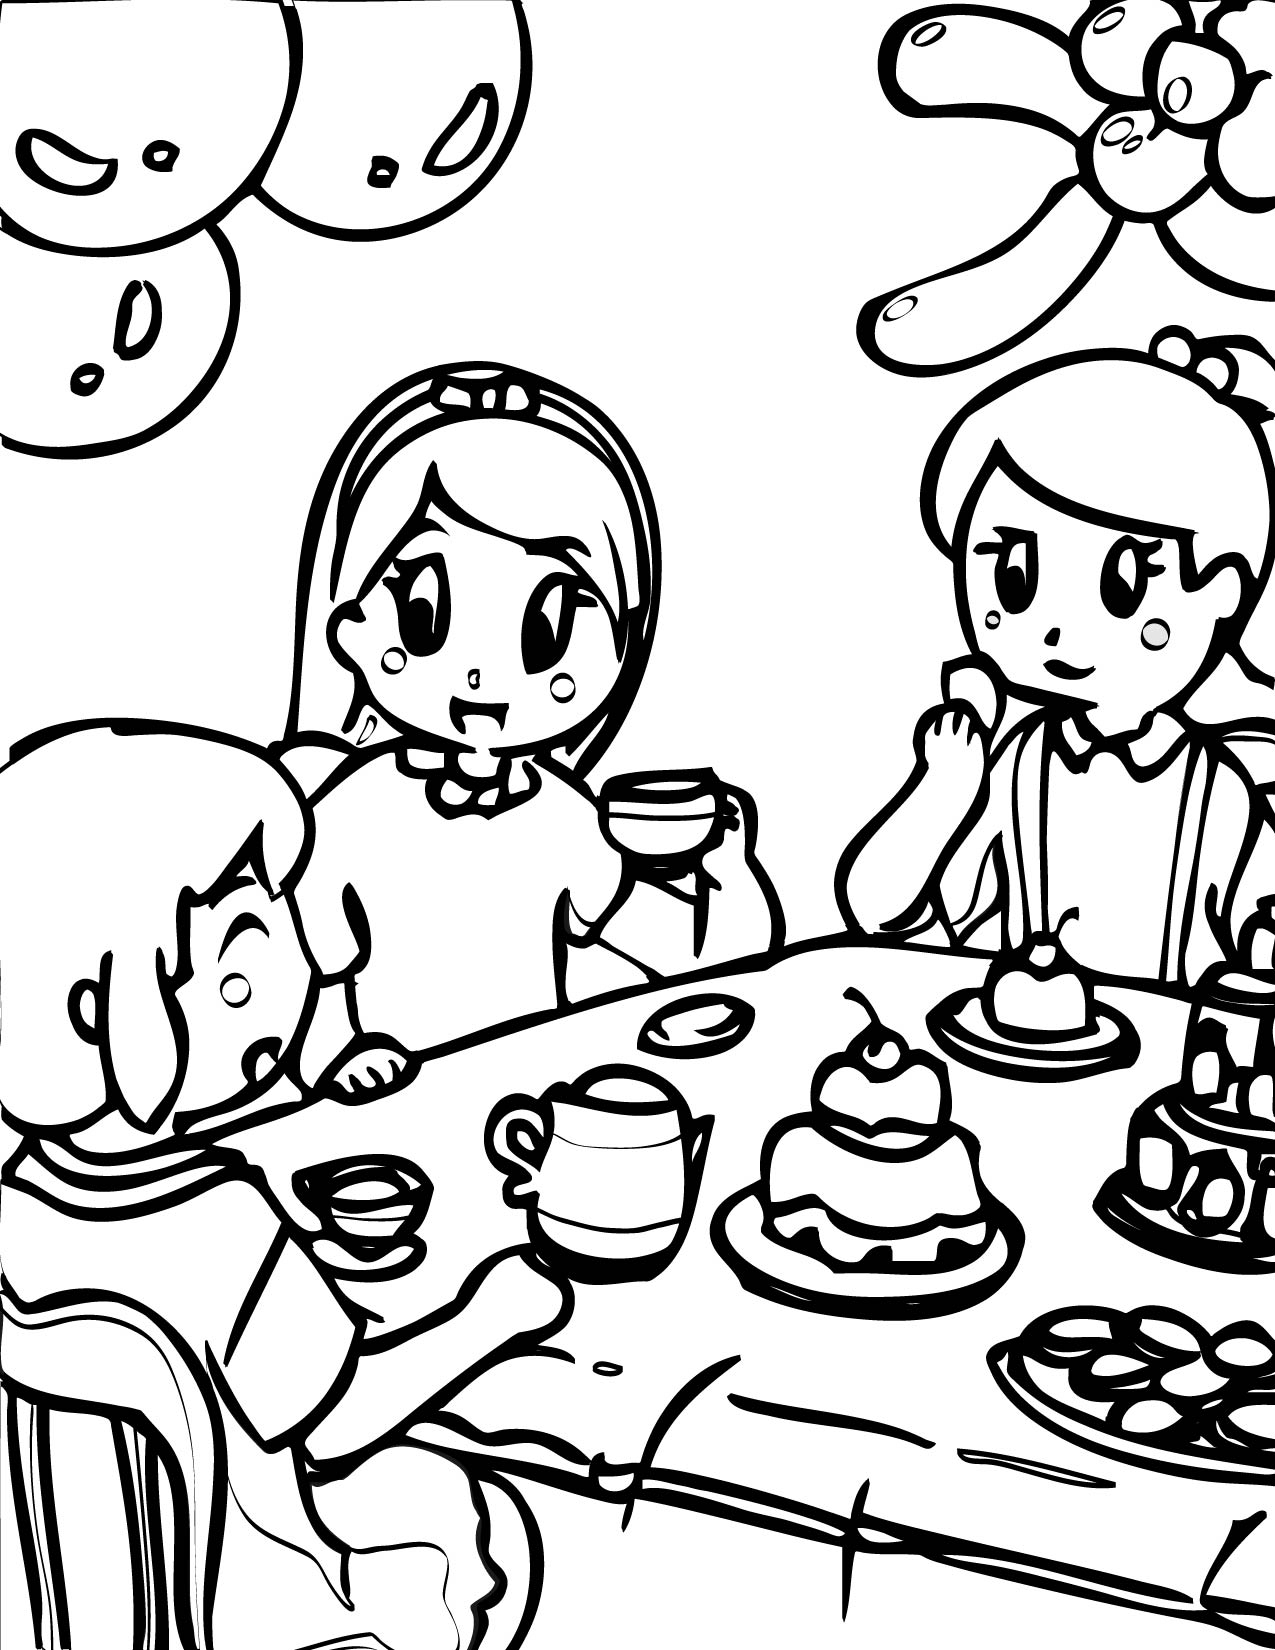 Tea party coloring pages to download